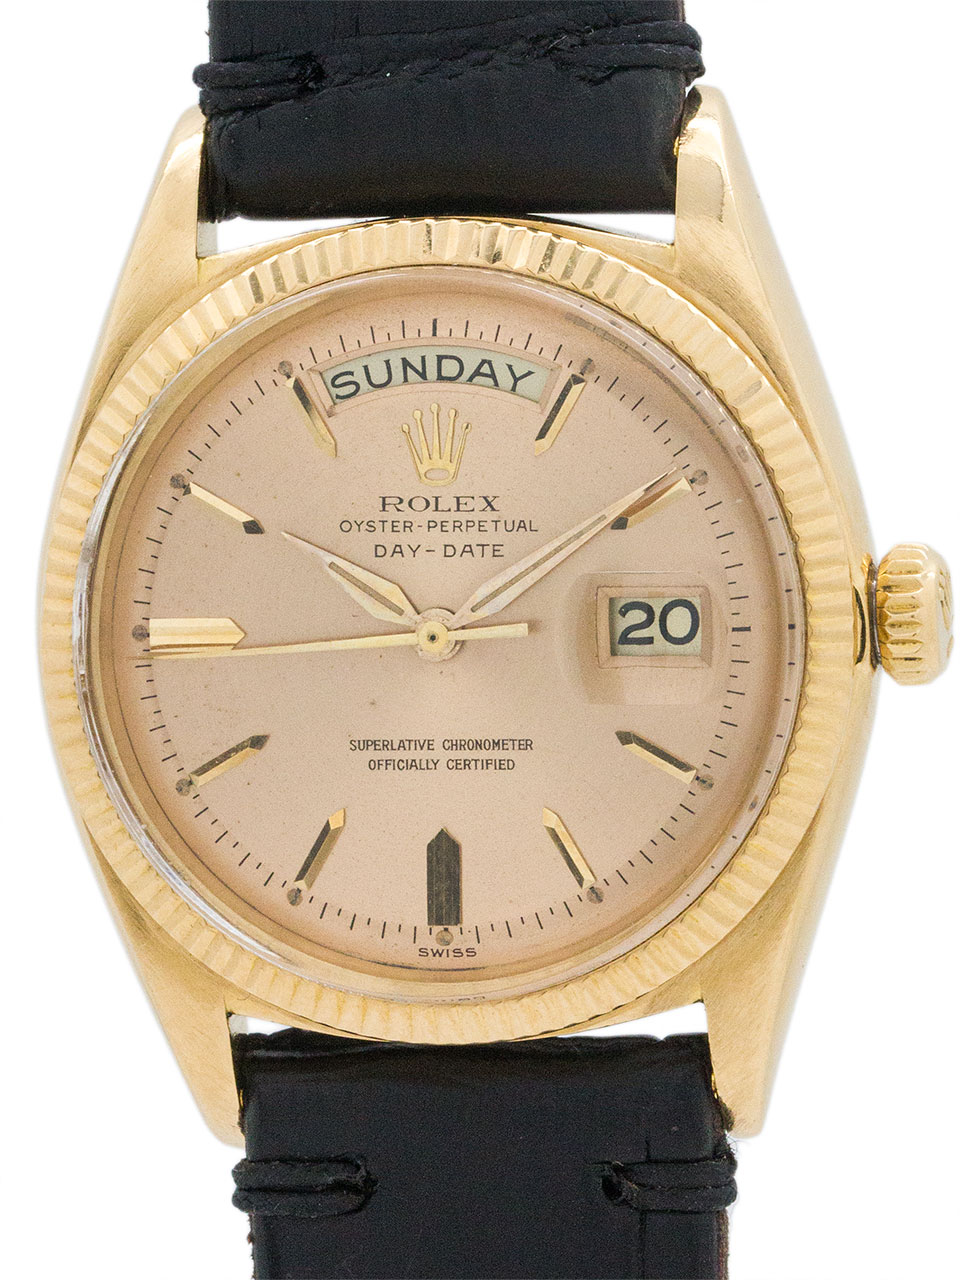 Rolex Day Date President ref 1803 Rose Dial circa 1968